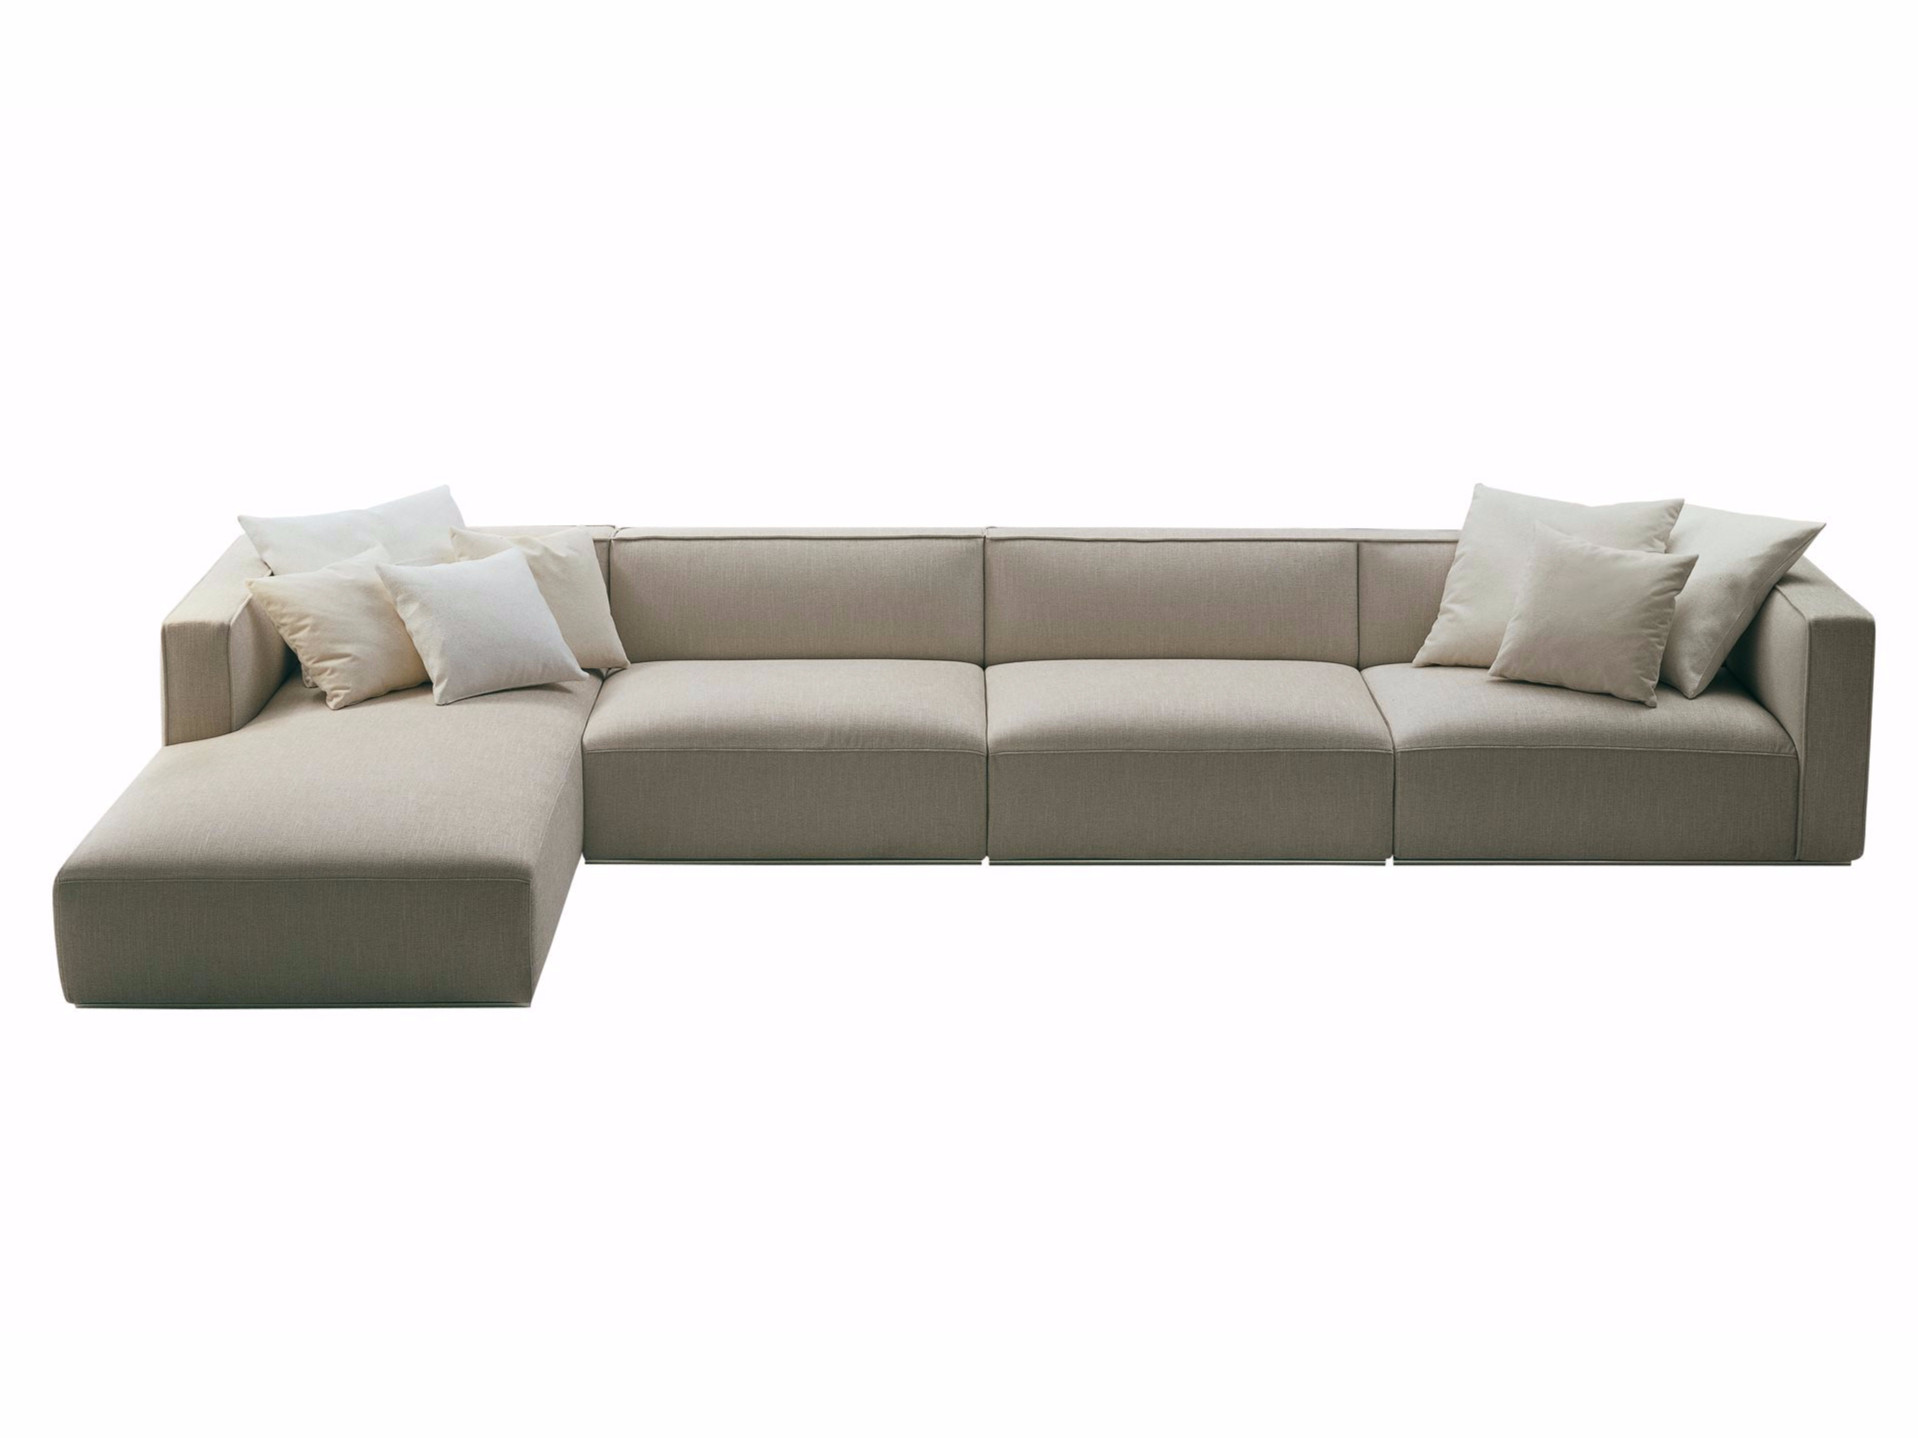 shangai sectional fabric sofa with removable cover with chaise longue shangai sofa with chaise longue poliform